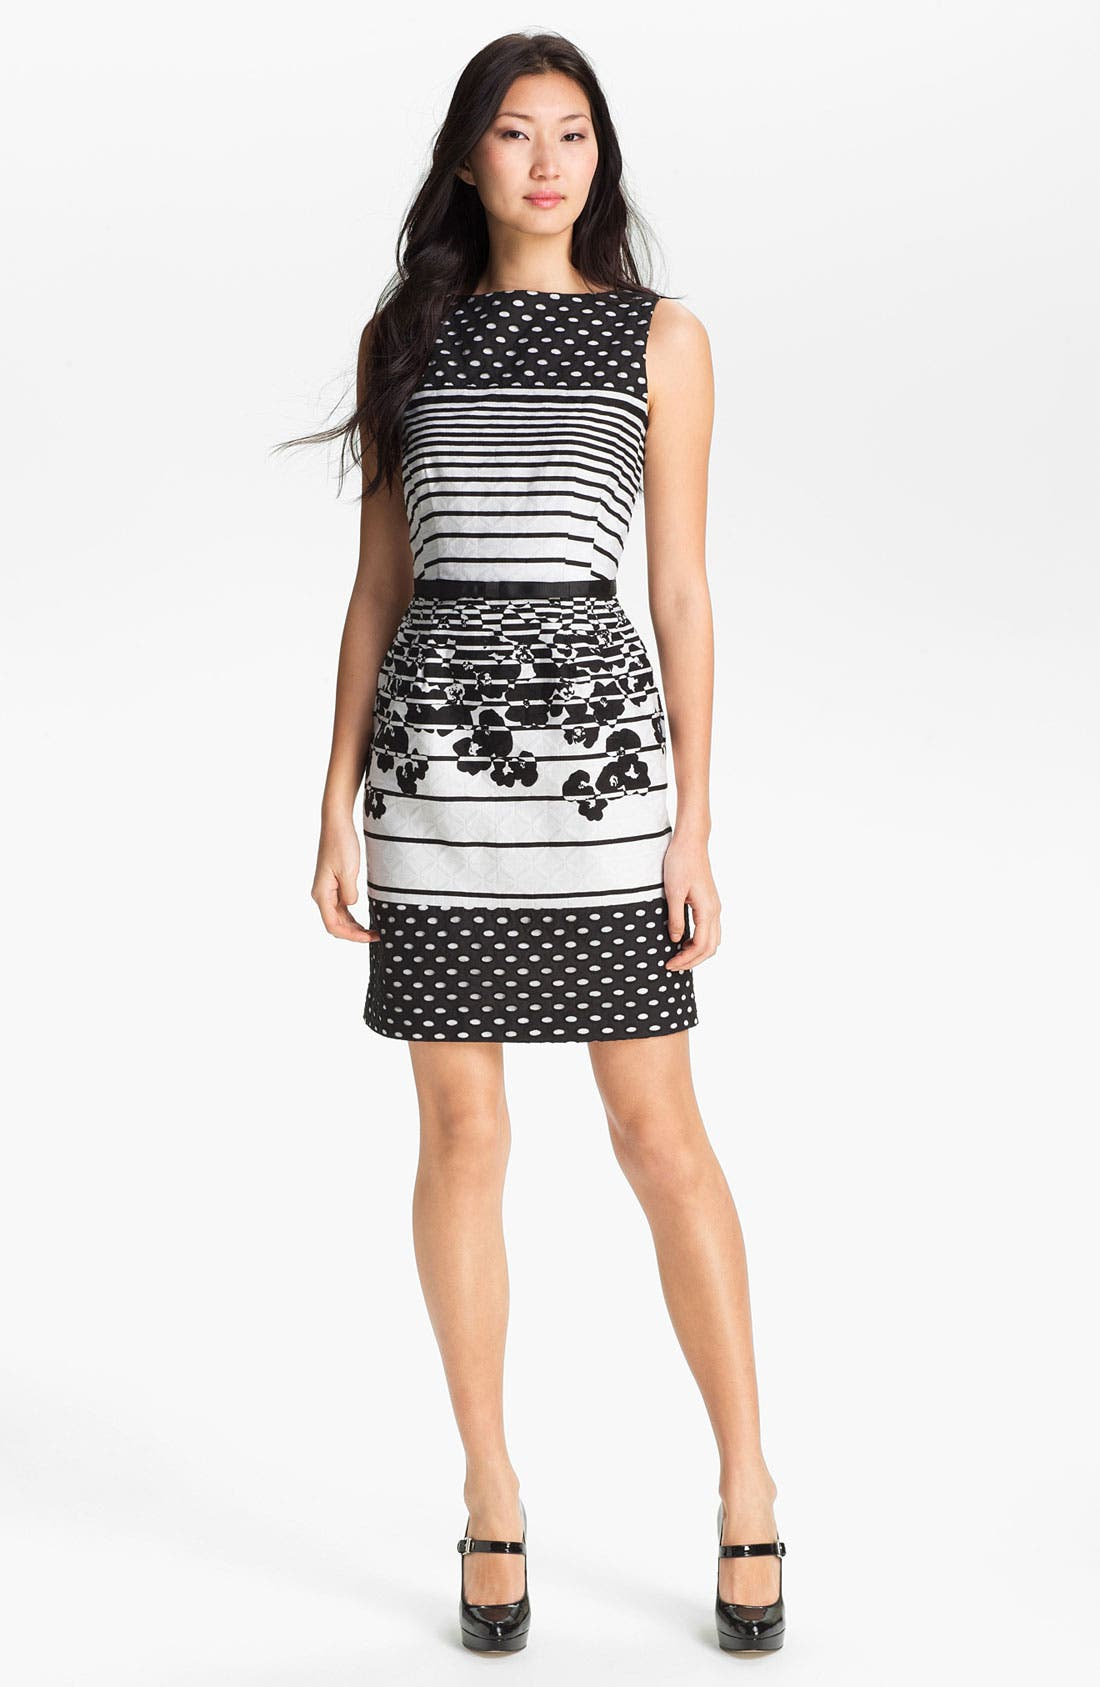 Main Image - Taylor Dresses Jacquard Print Sheath Dress